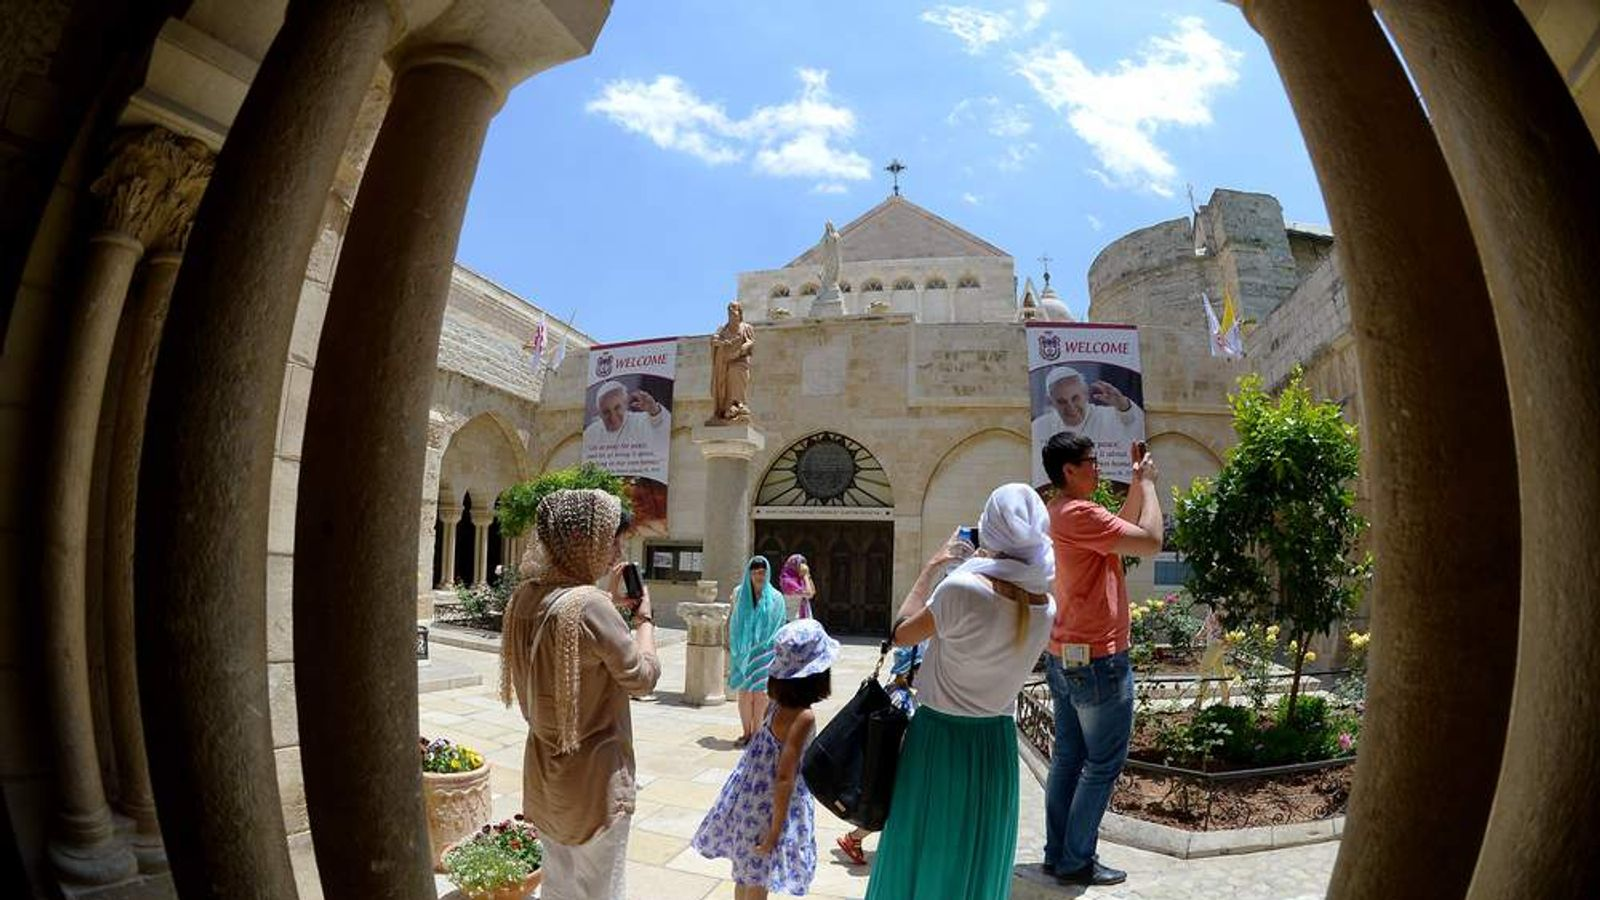 Pilgrims take photos in the courtyard of the Church of the Nativity in Bethlehem